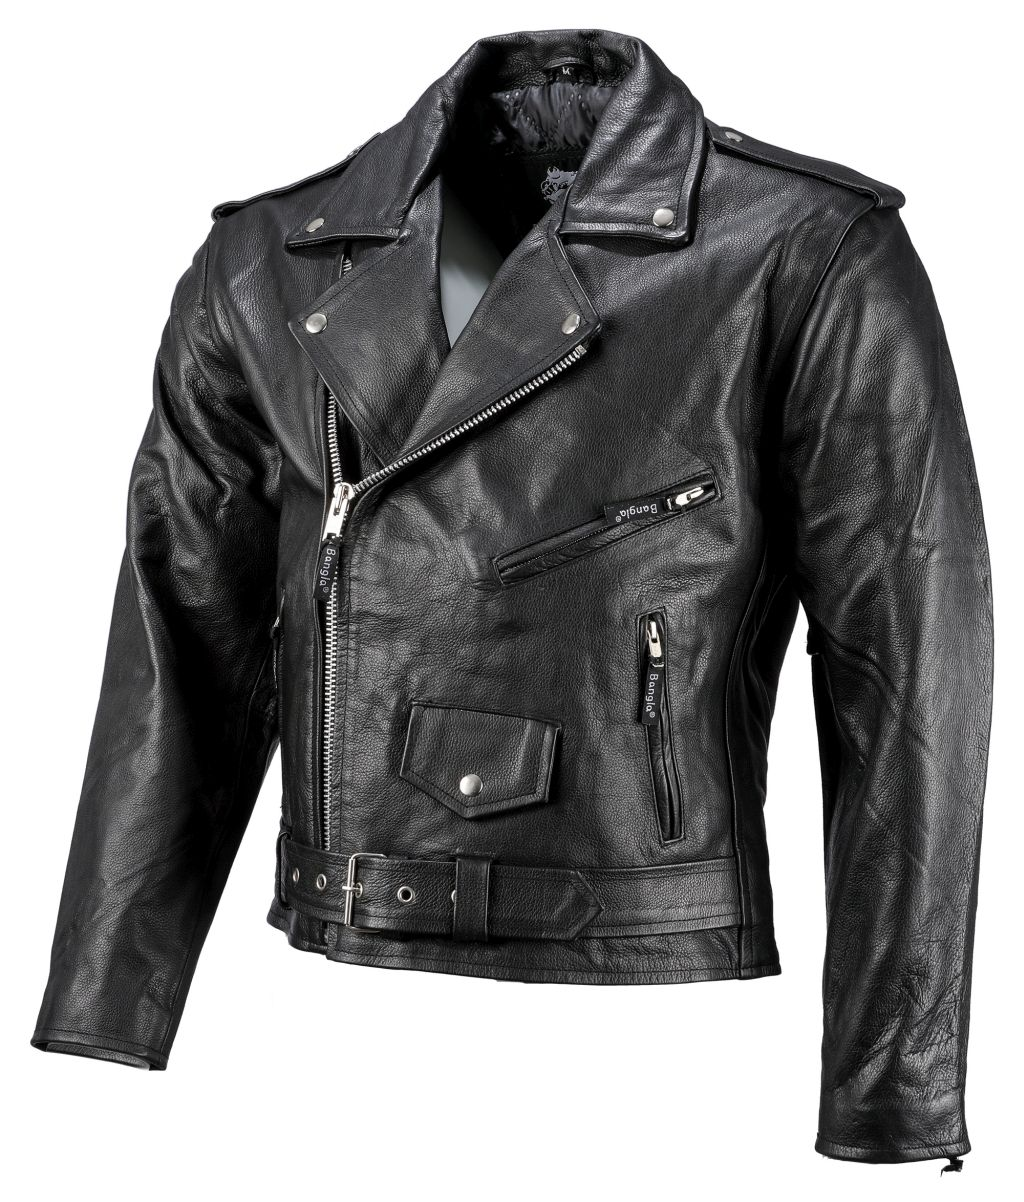 Bangla Herren Chopperjacke Rockabilly Biker Leder Jacke Schwarz S - 6 XL